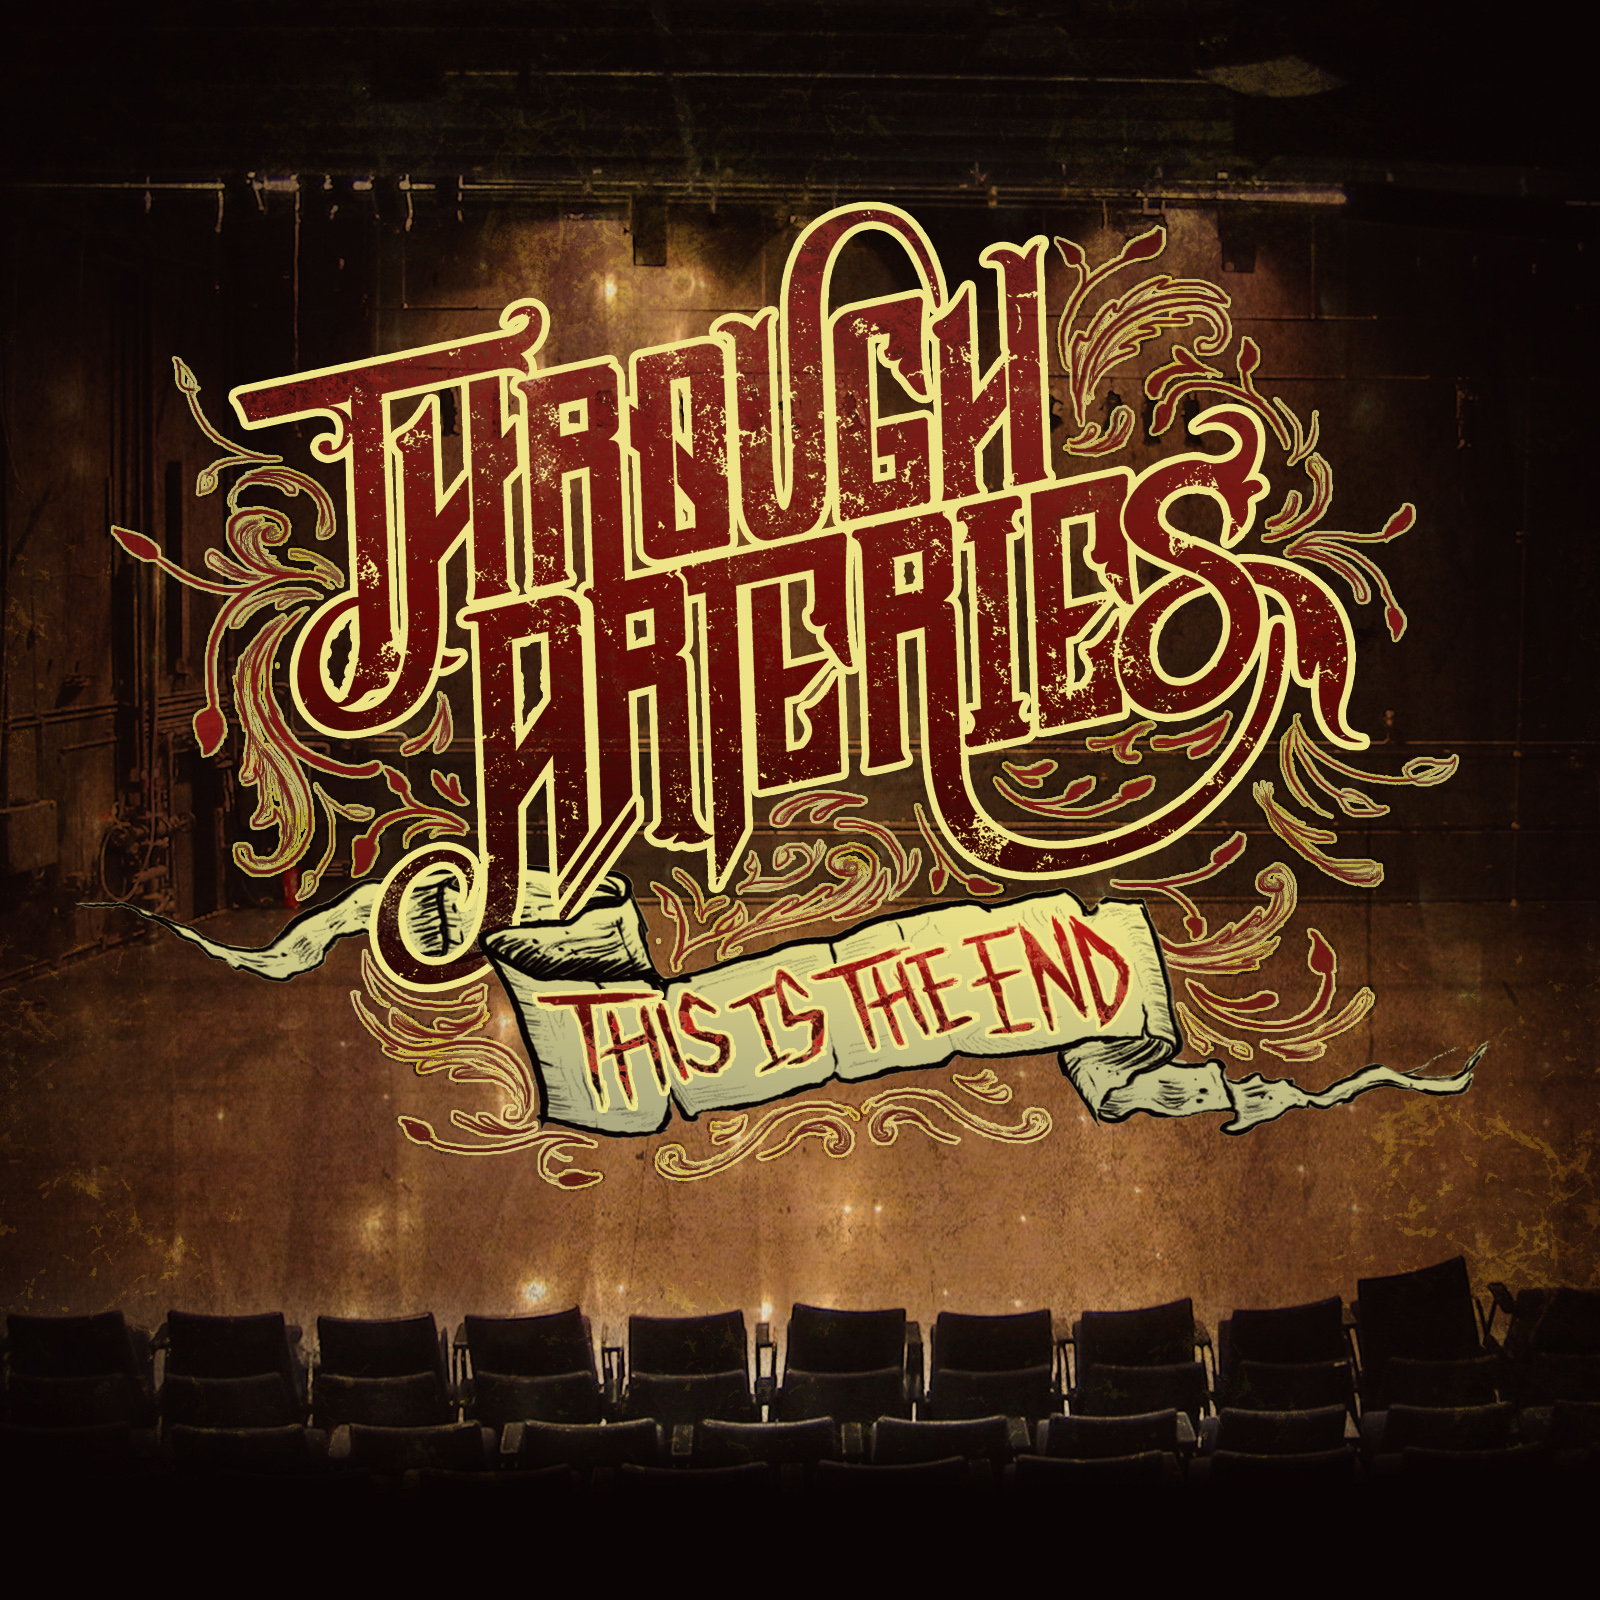 Through Arteries - This Is the End [single] (2014)